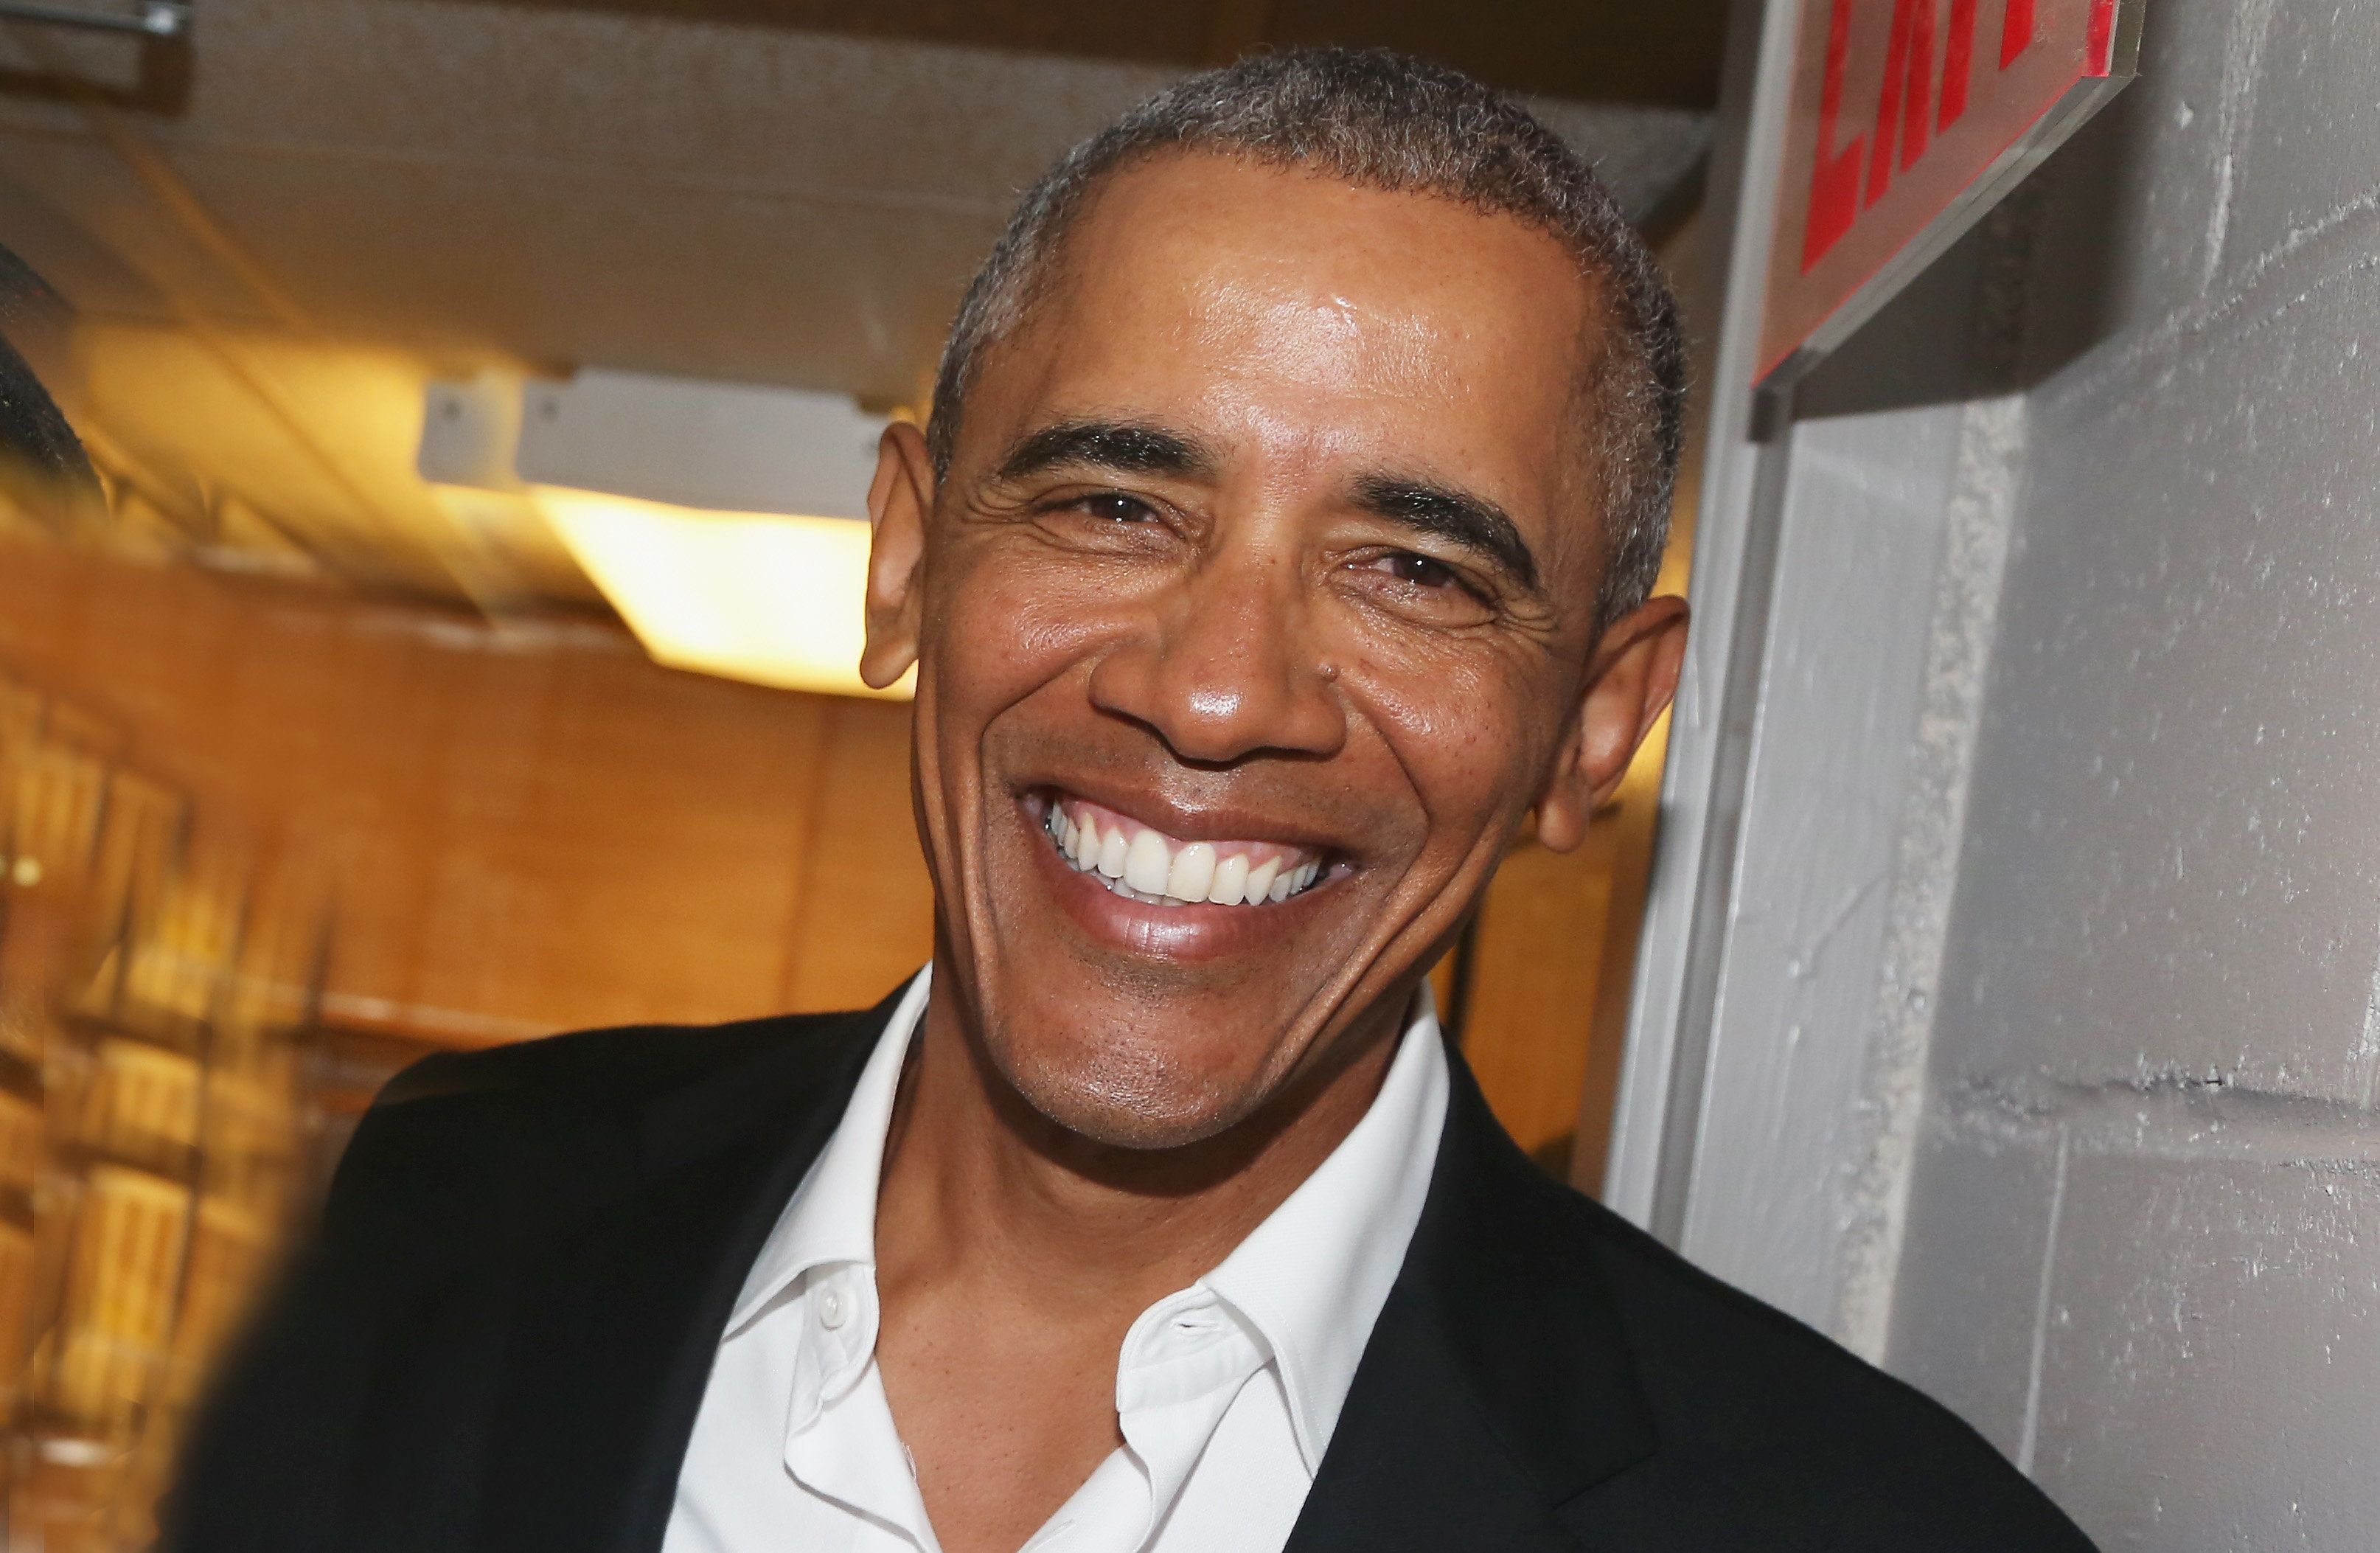 NEW YORK, NY - FEBRUARY 24:  (EXCLUSIVE COVERAGE) The 44th President of The United States Barack Obama, poses backstage at The Roundabout Theatre Company's production of 'Arthur Miller's The Price' on Broadway at The American Airlines Theatre on February 24, 2017 in New York City.  (Photo by Bruce Glikas/FilmMagic)